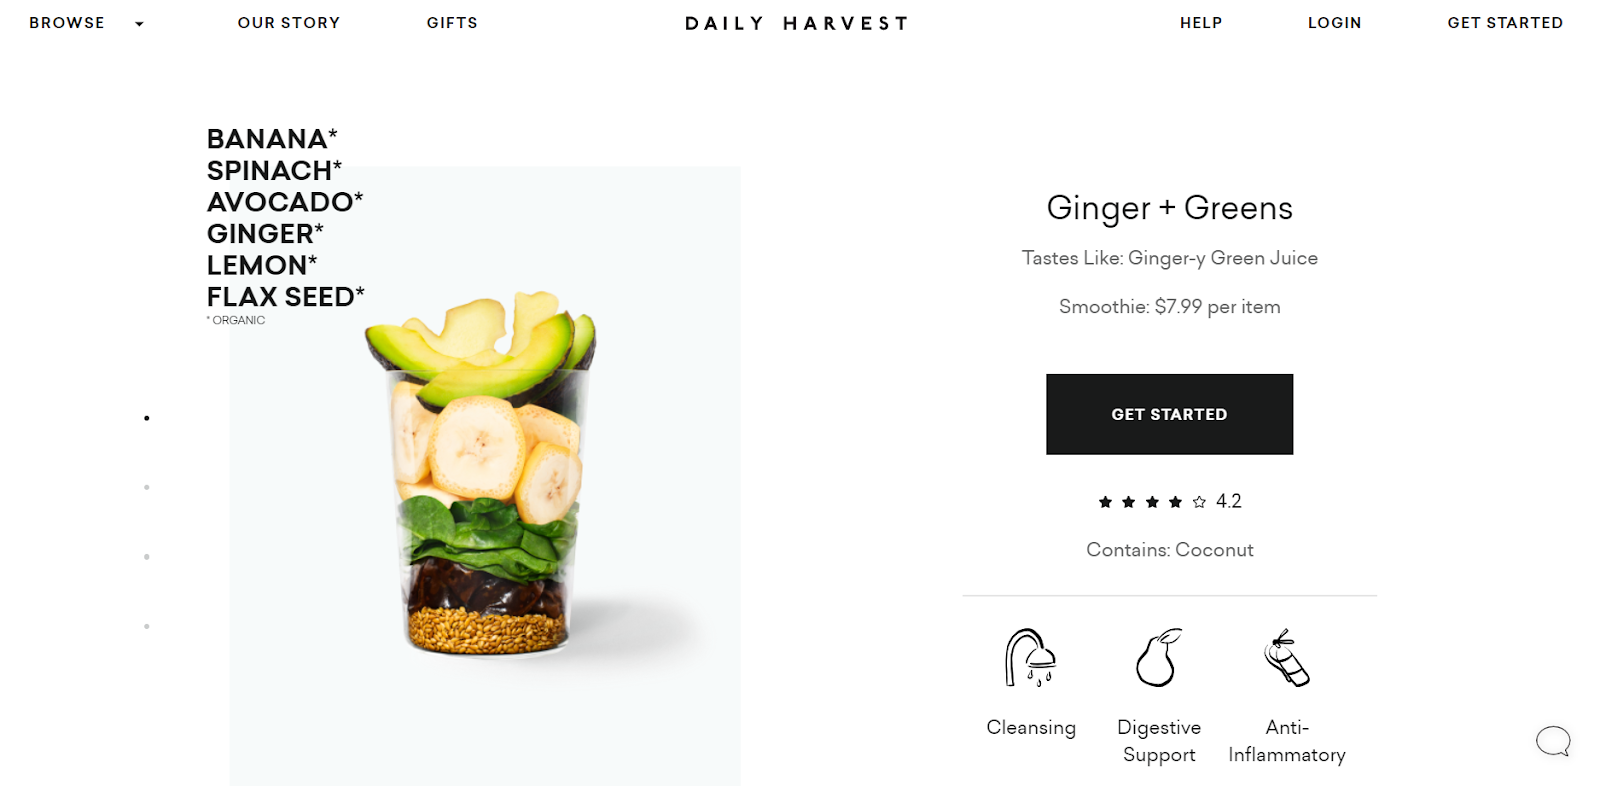 Daily Harvest product page design